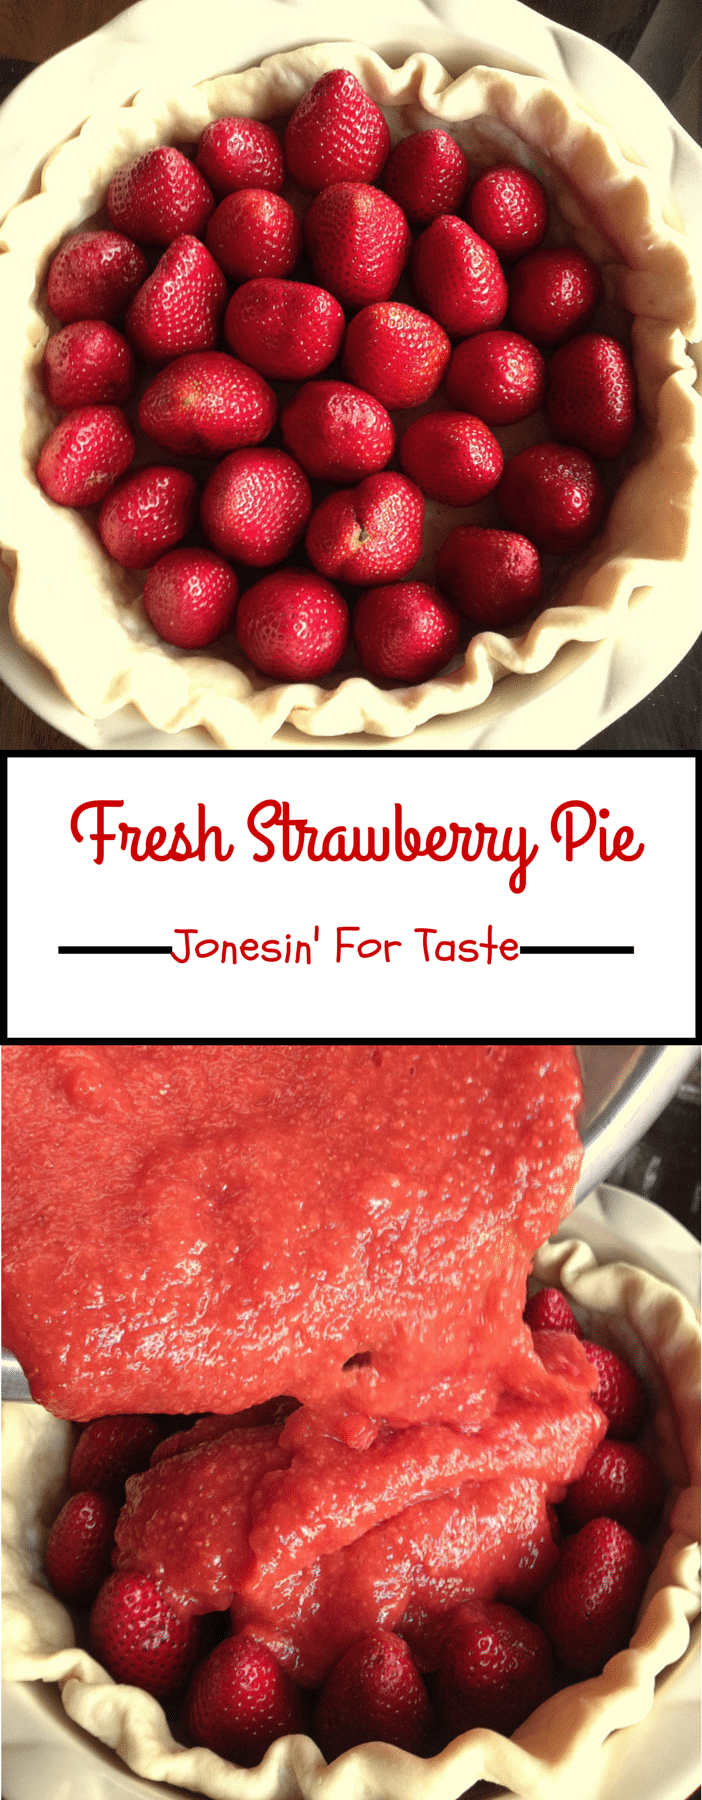 This No Bake Fresh Strawberry Pie is filled with nothing but strawberries with a homemade strawberry sauce- no jell-o needed!